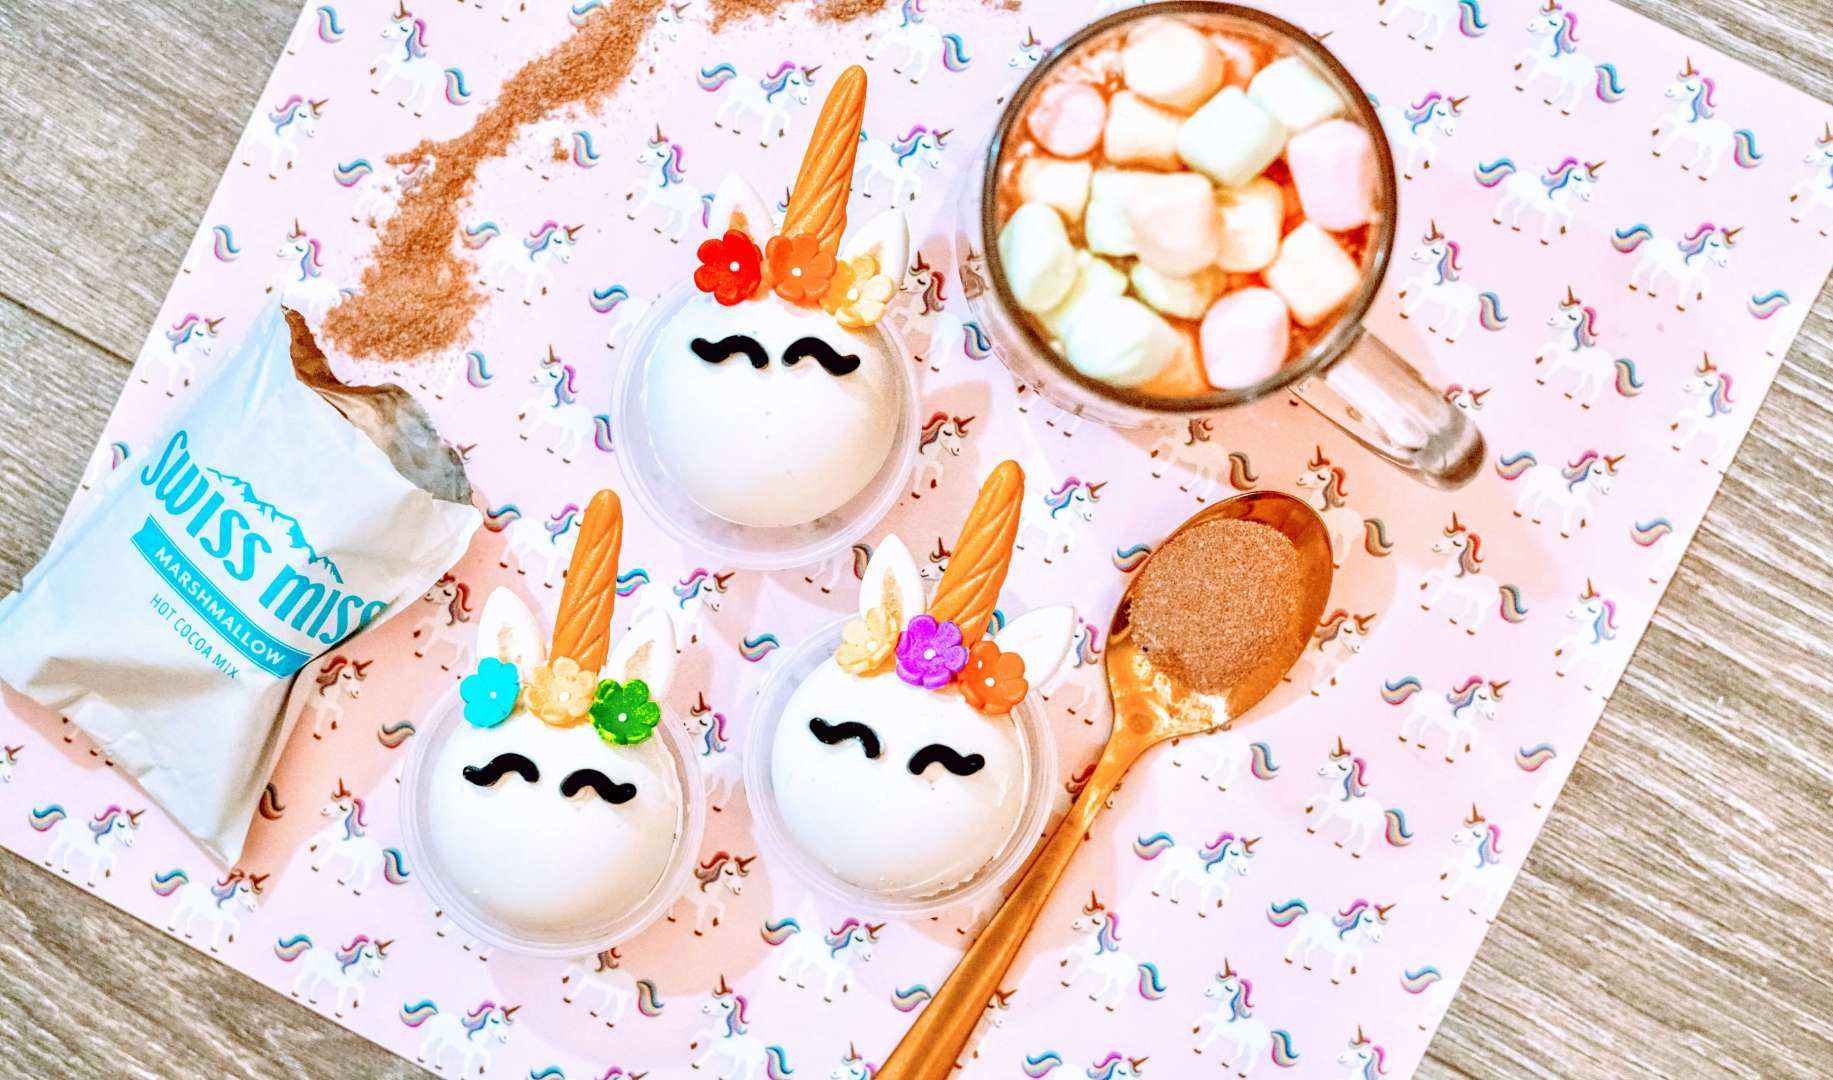 Make your own unicorn hot cocoa bombs at home